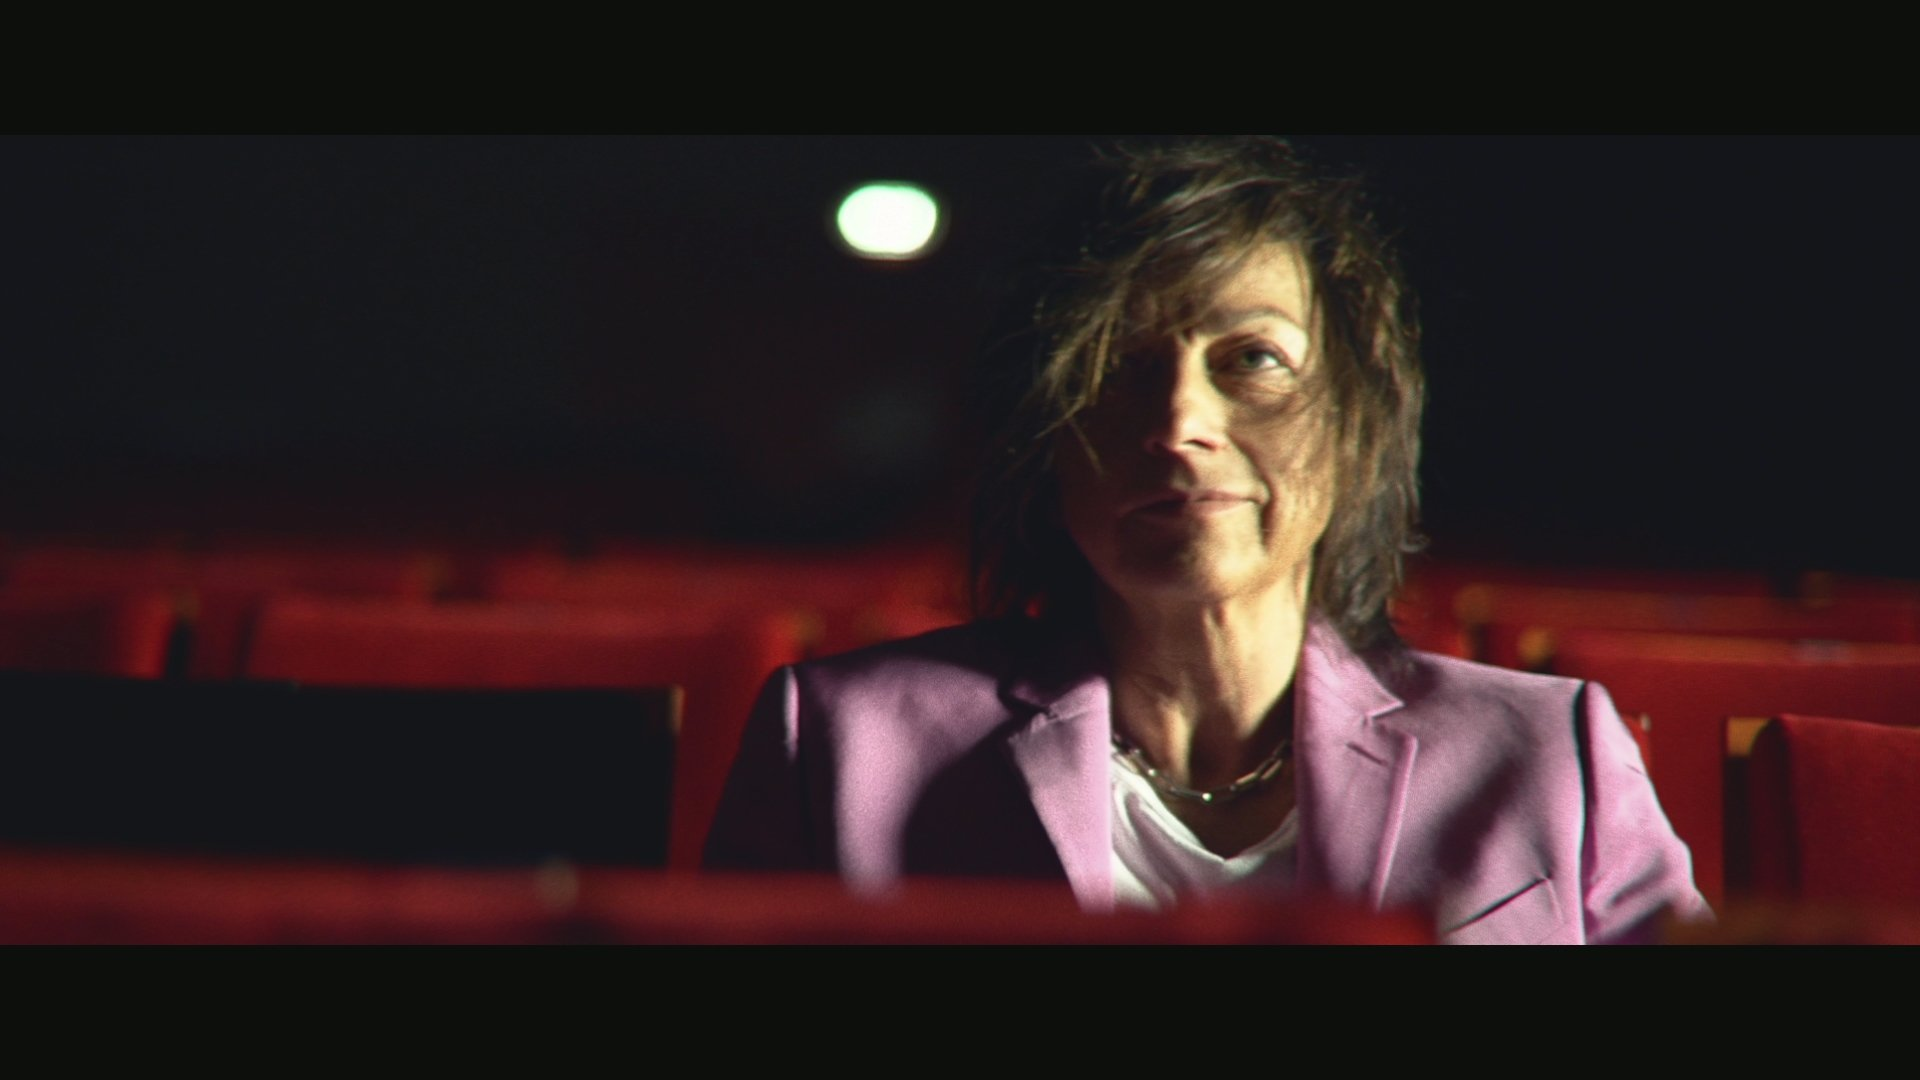 Video Gianna Nannini naked (62 foto and video), Pussy, Sideboobs, Instagram, braless 2006